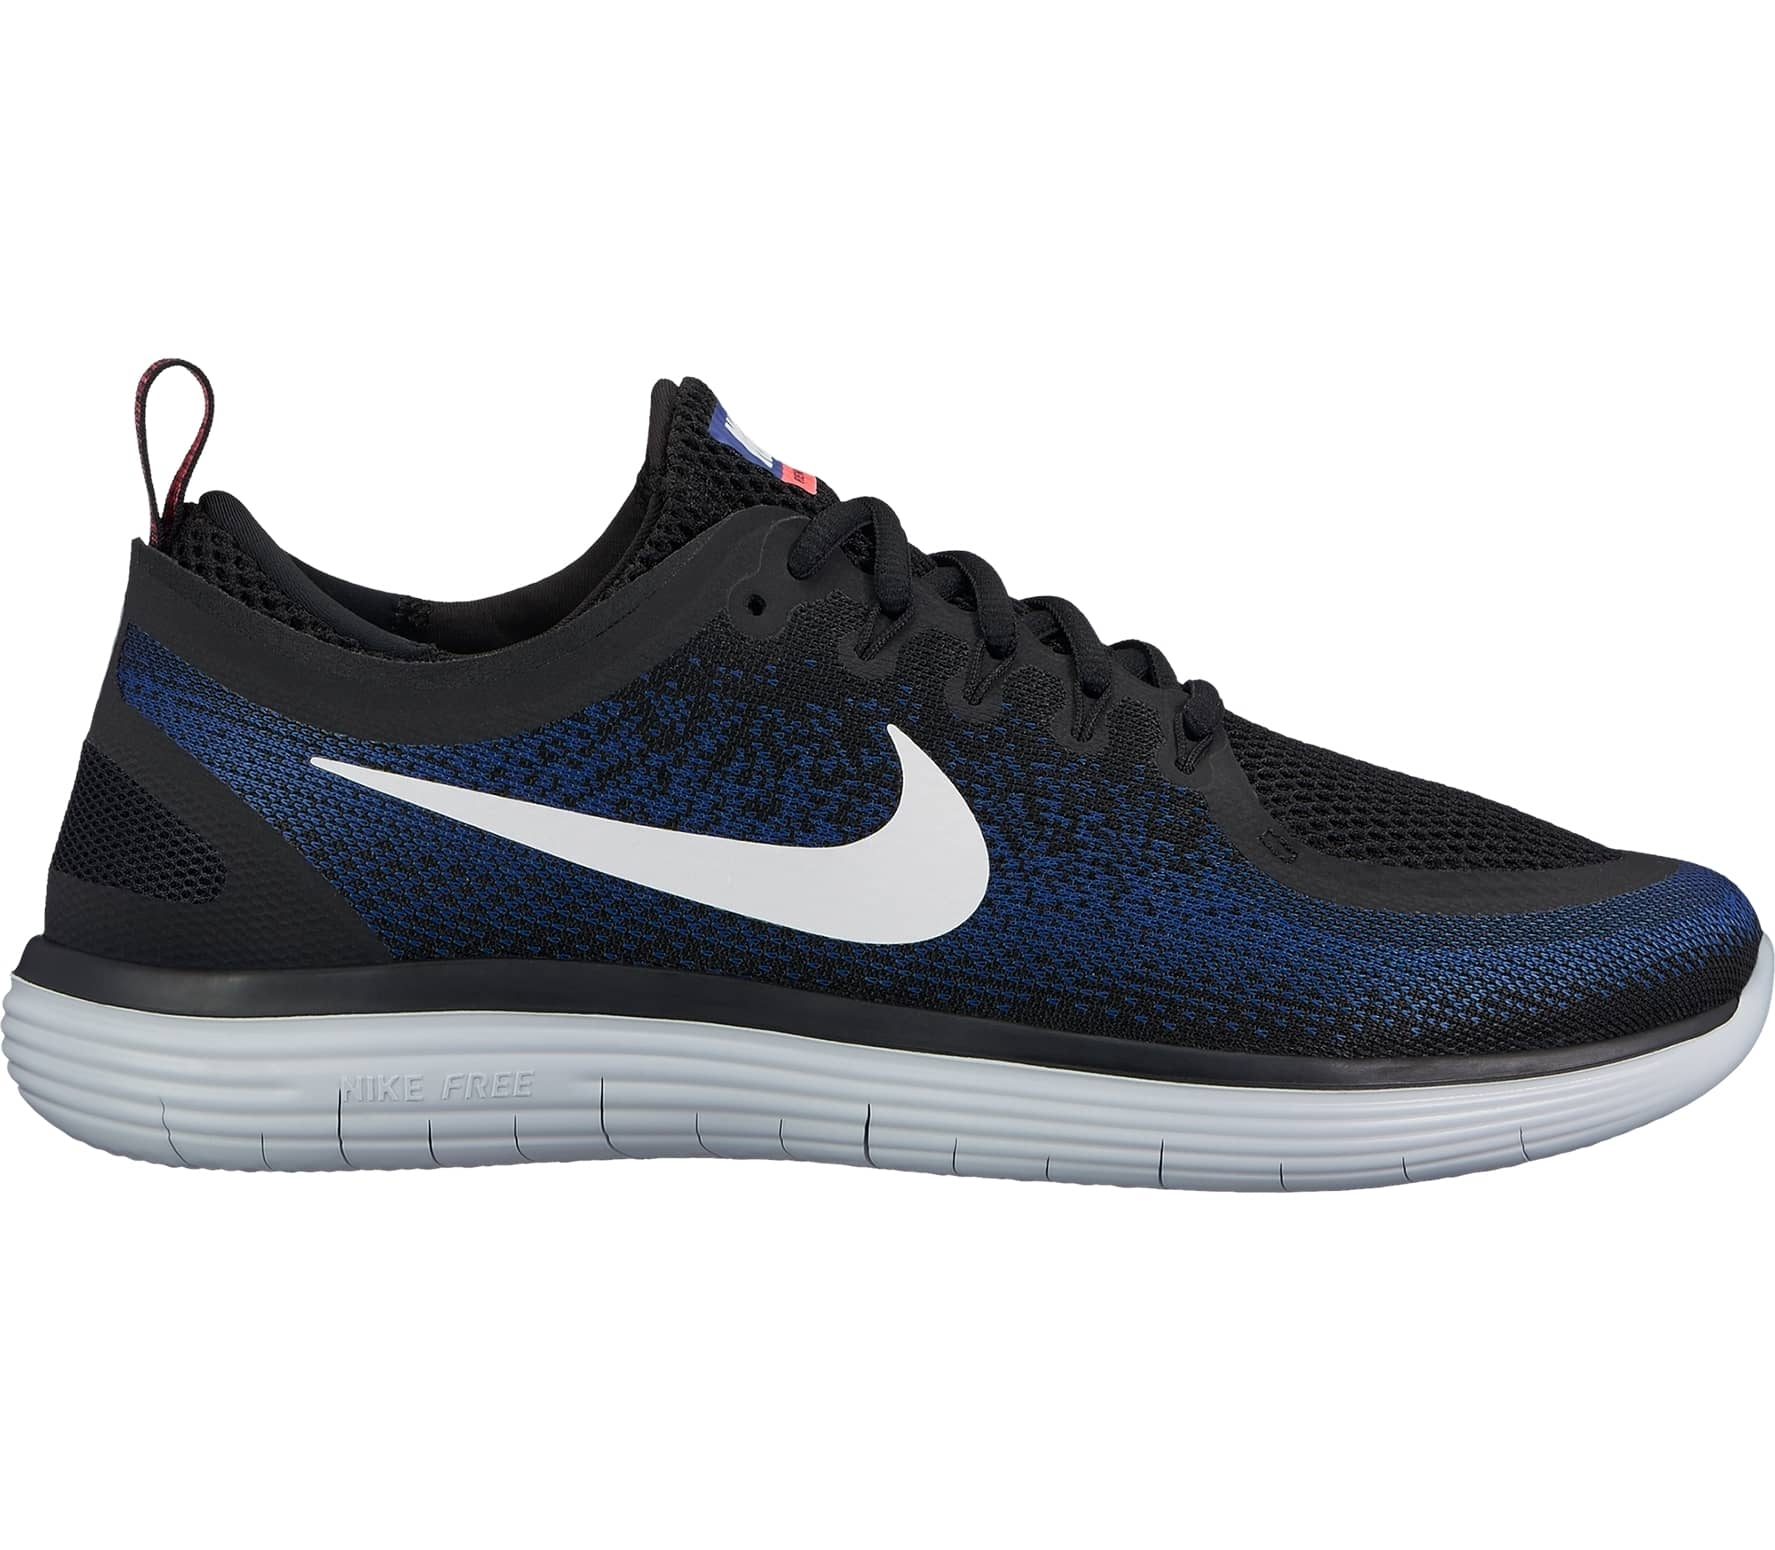 on sale 0a1b3 7786d Nike Free RN Distance 2 Men